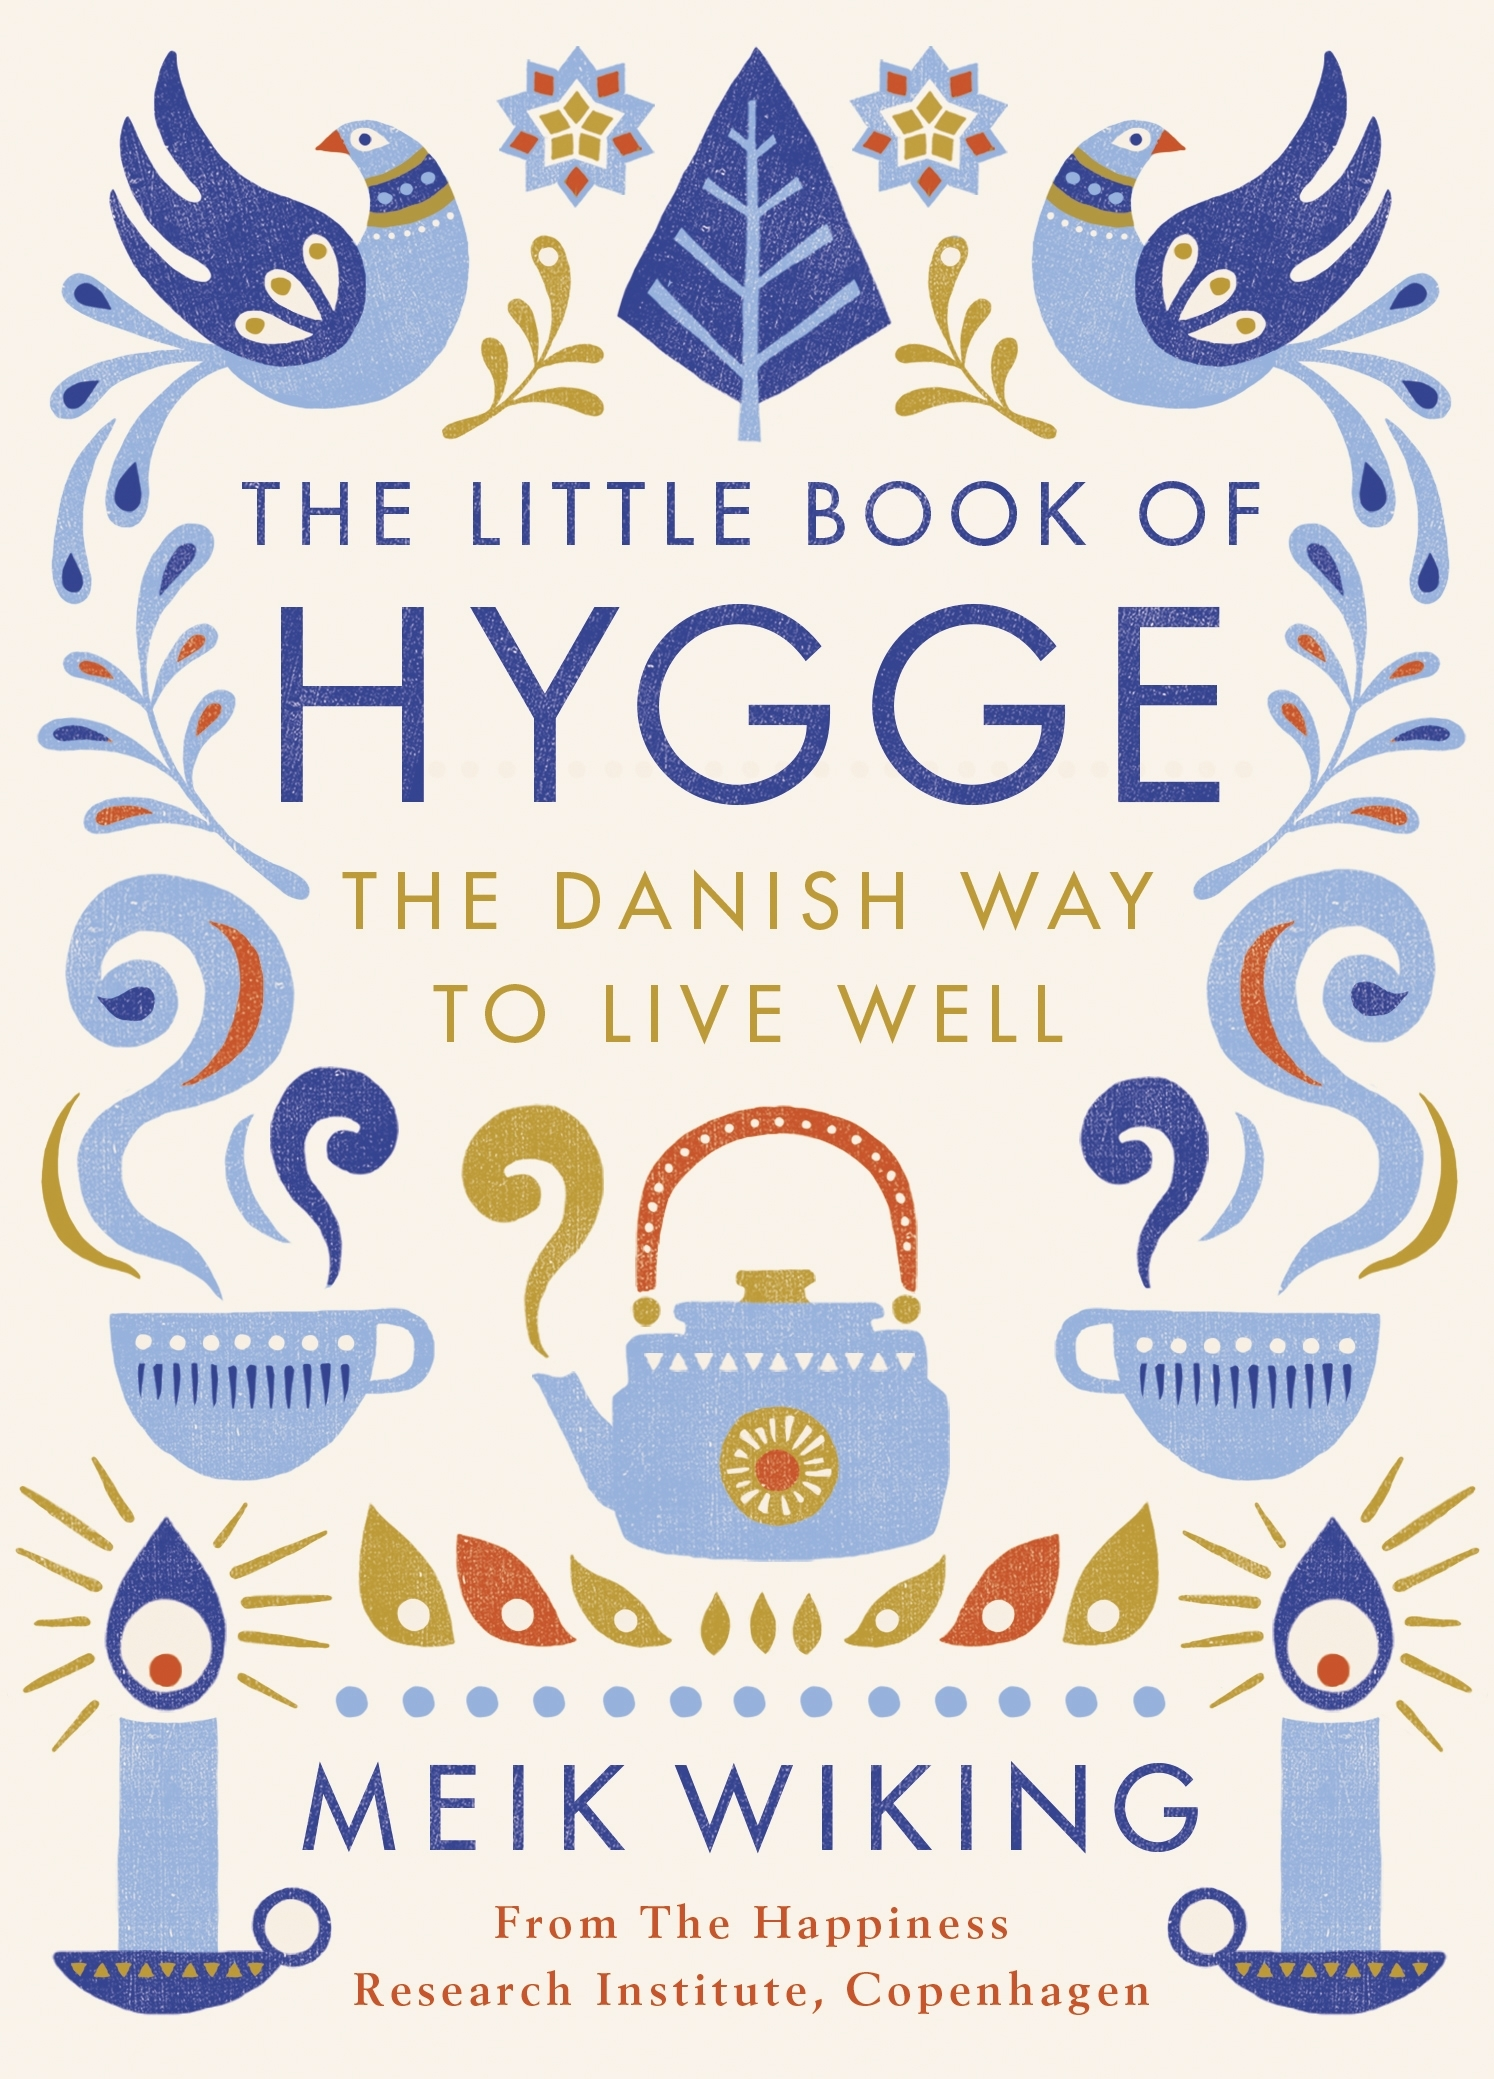 The Little Book of Hygge: The Danish Way to Live Well by Meik Wiking, ISBN: 9780241283912